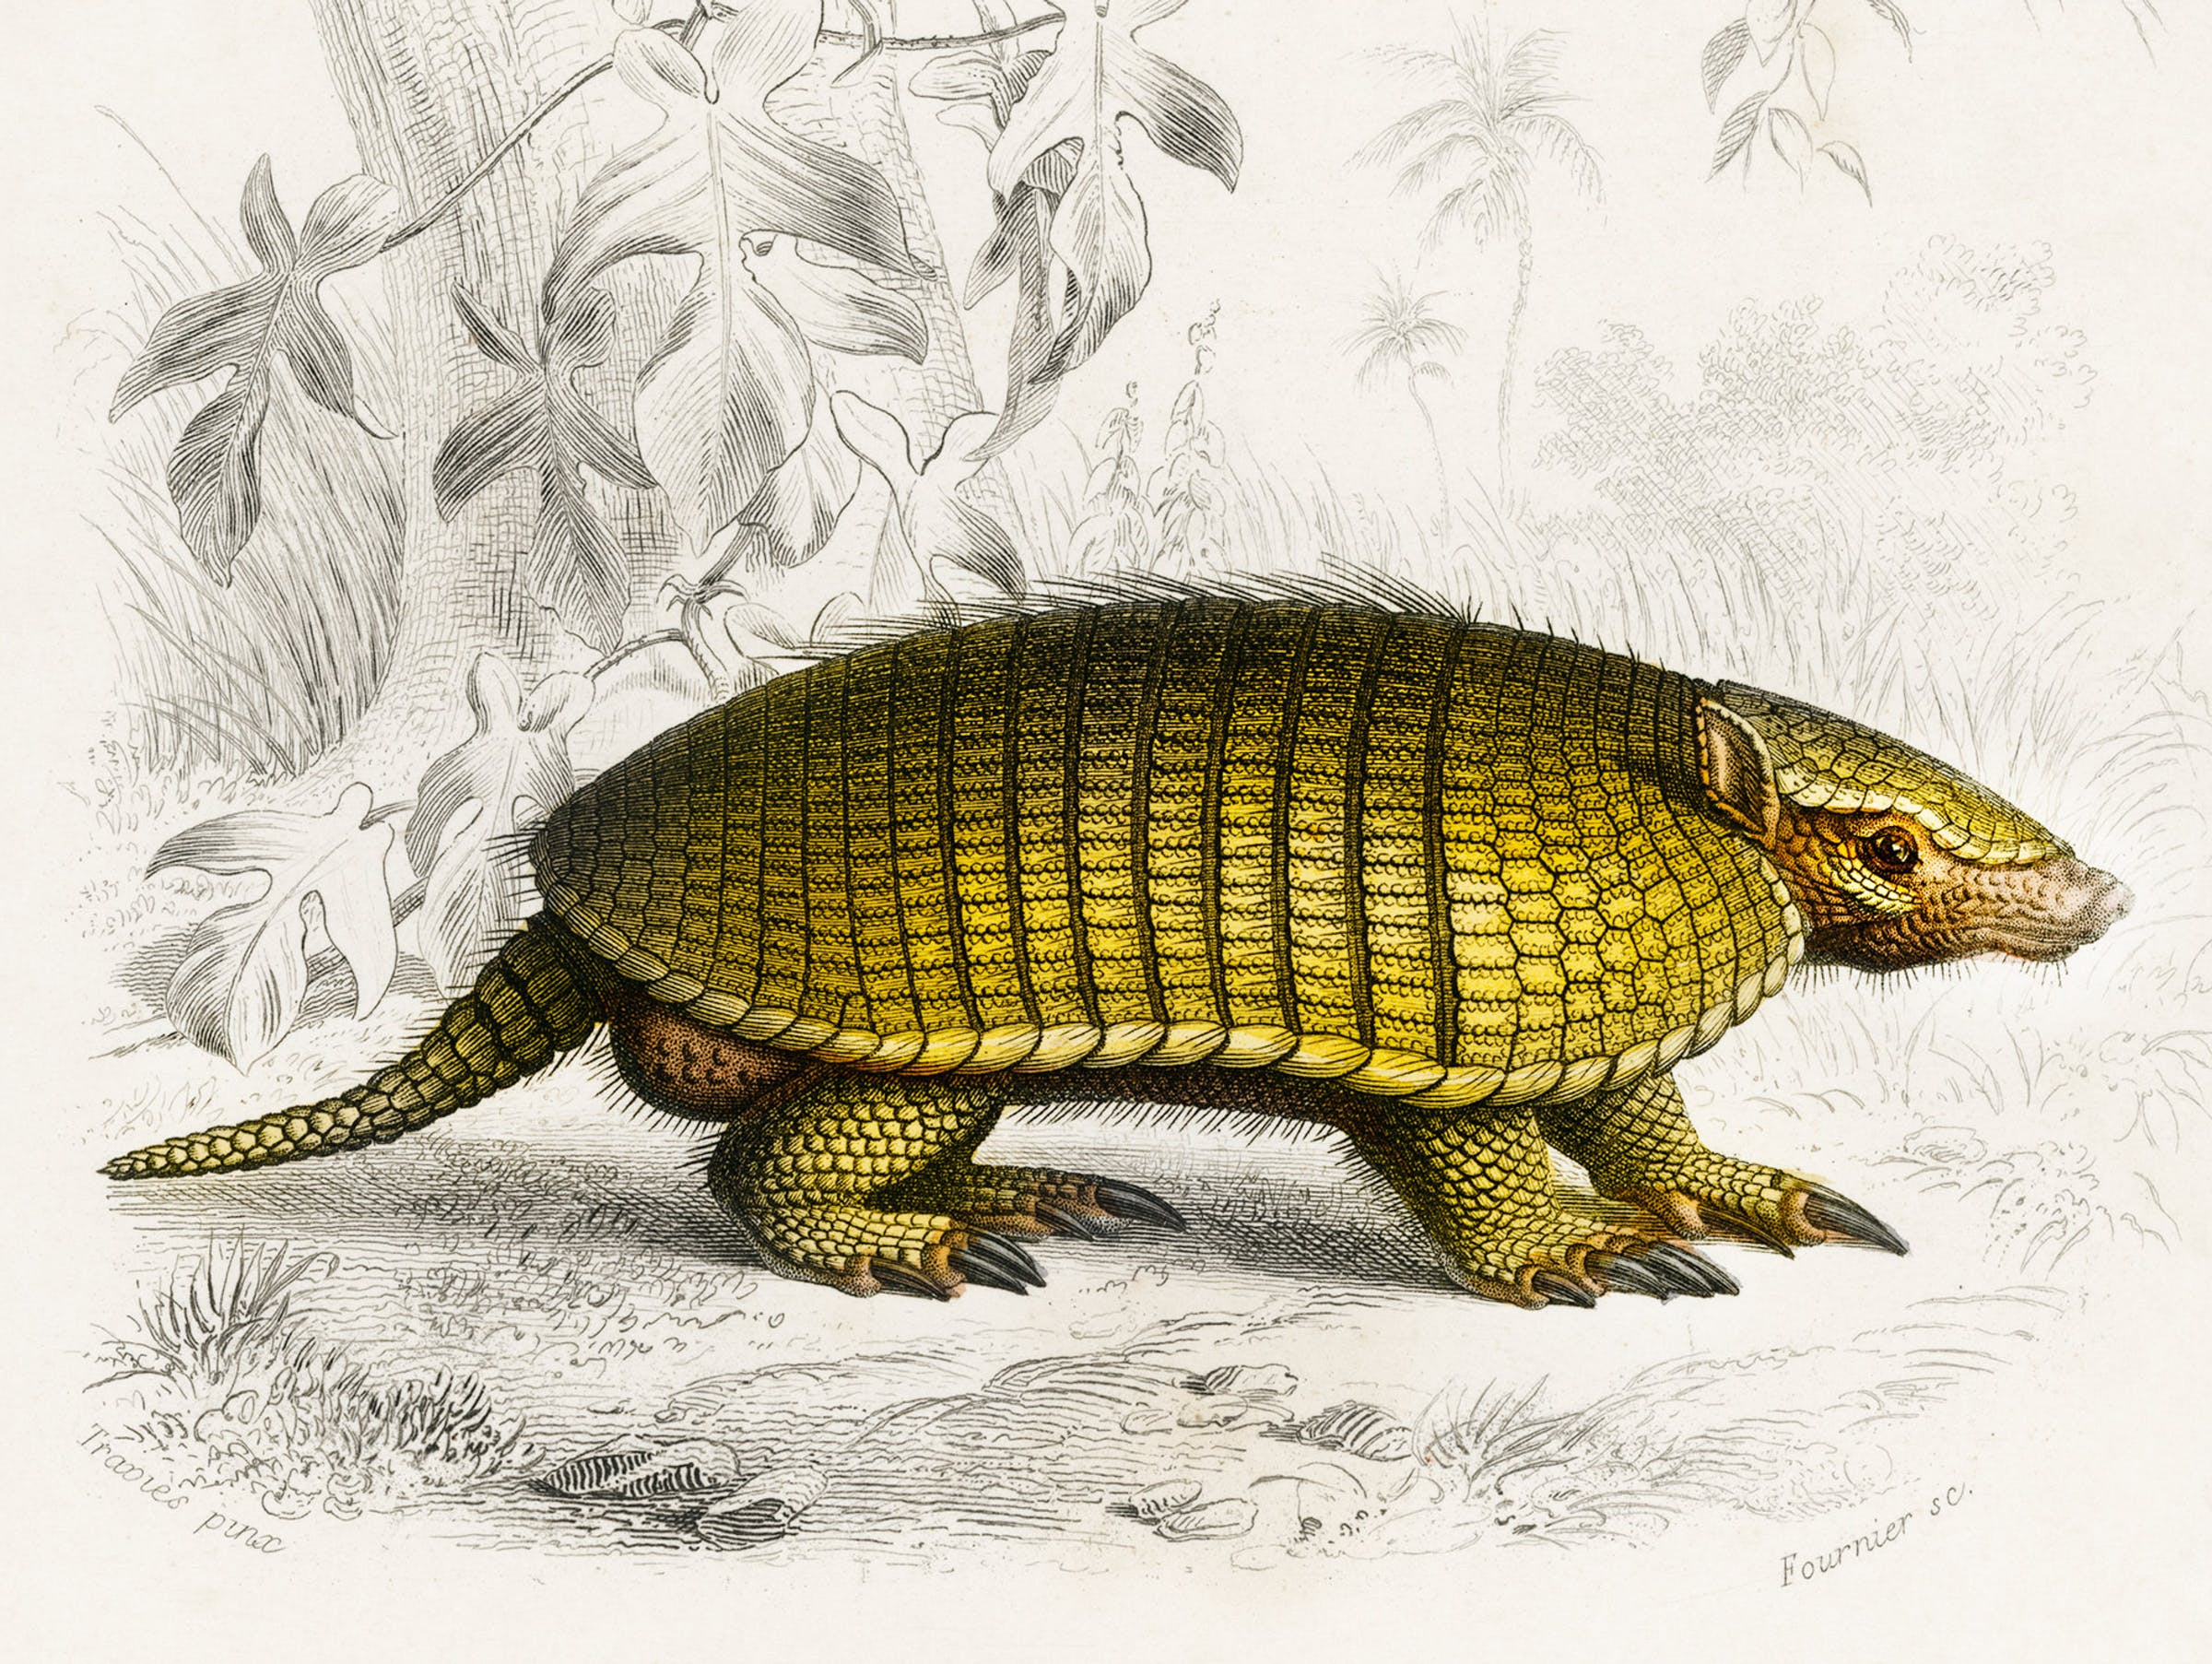 Manis crassicaudata (Indian Pangolin); Euphractus sexcinctus (Yellow armadillo)